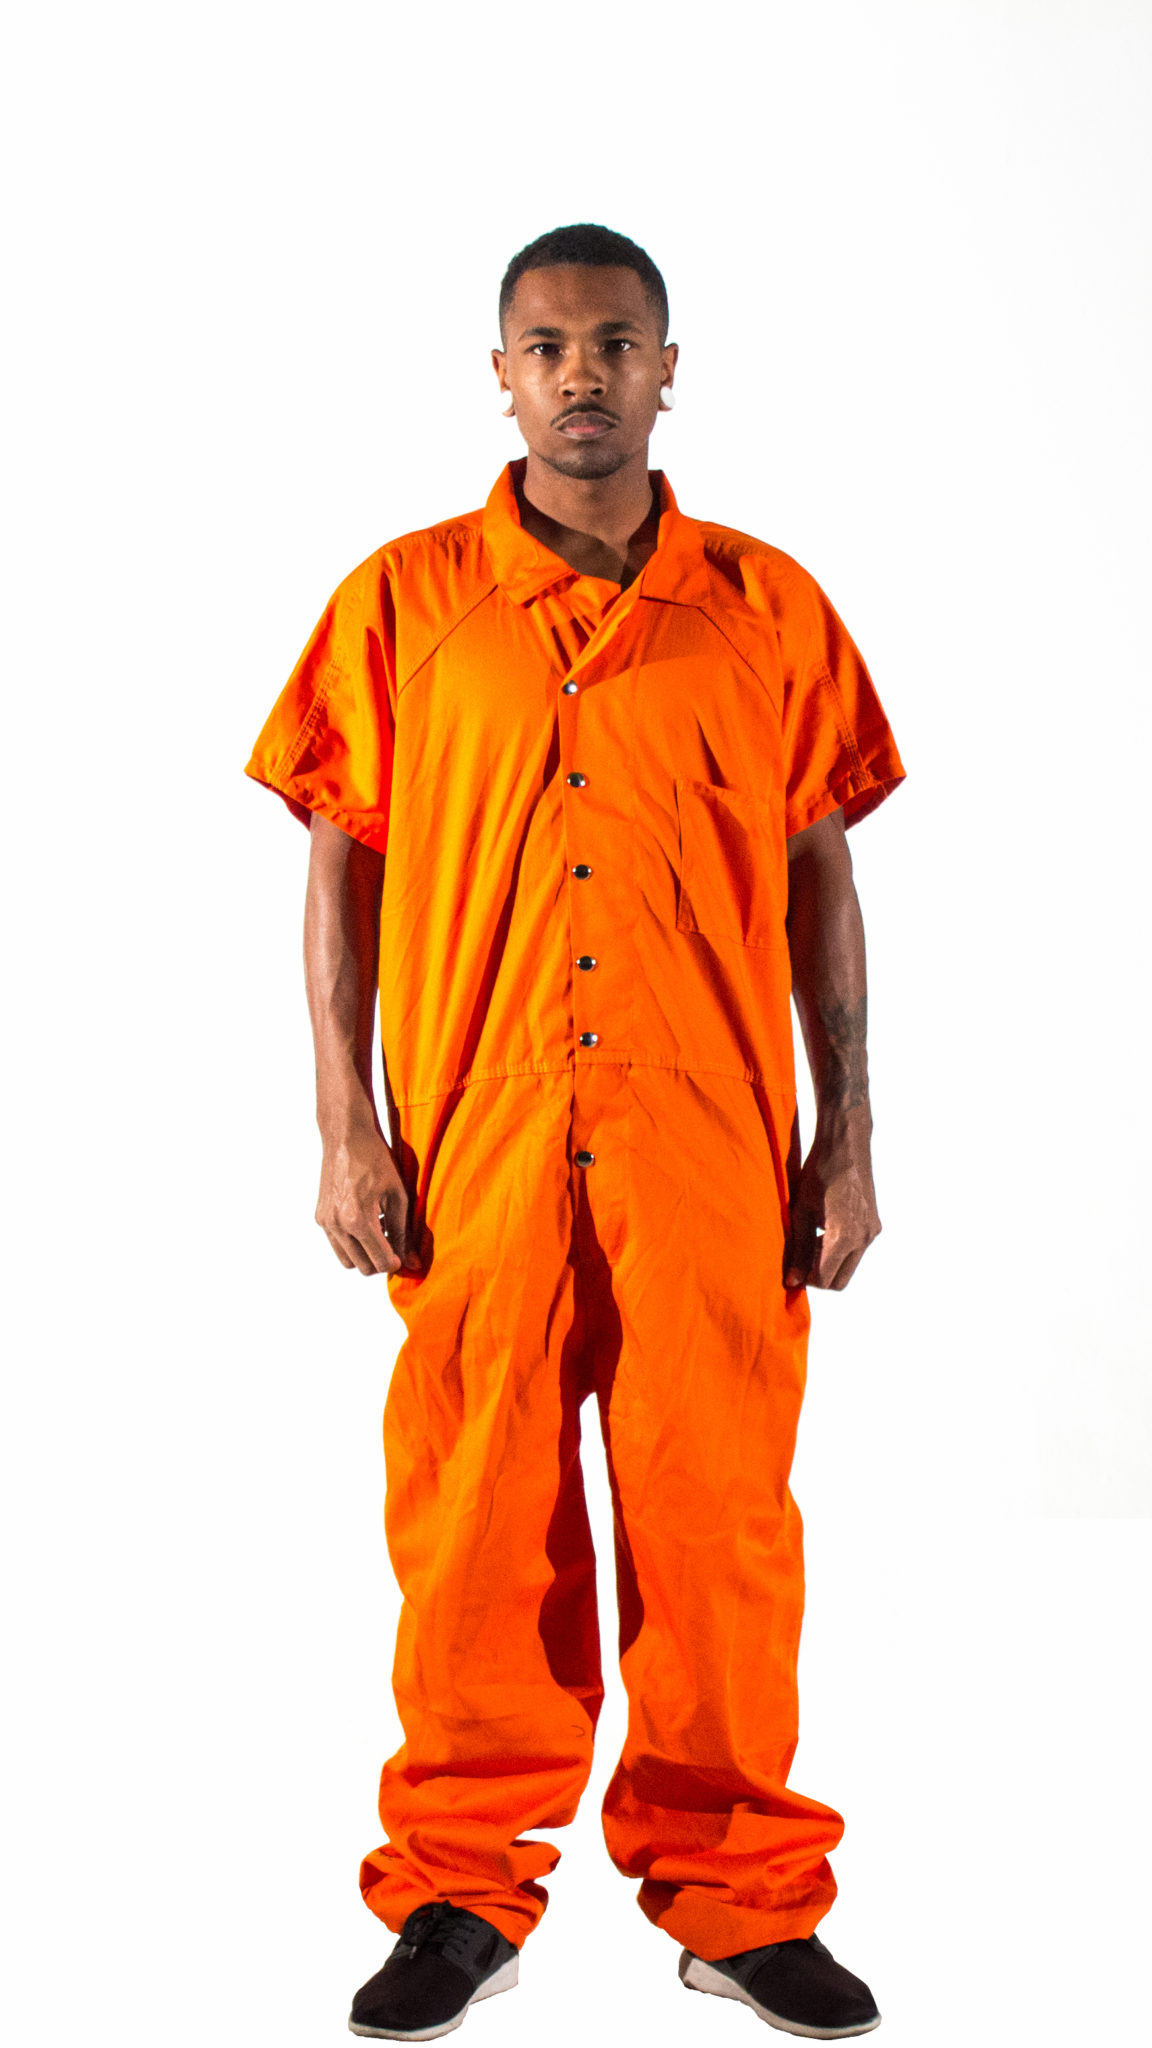 Prisoner Costumes Rentals In Los Angeles